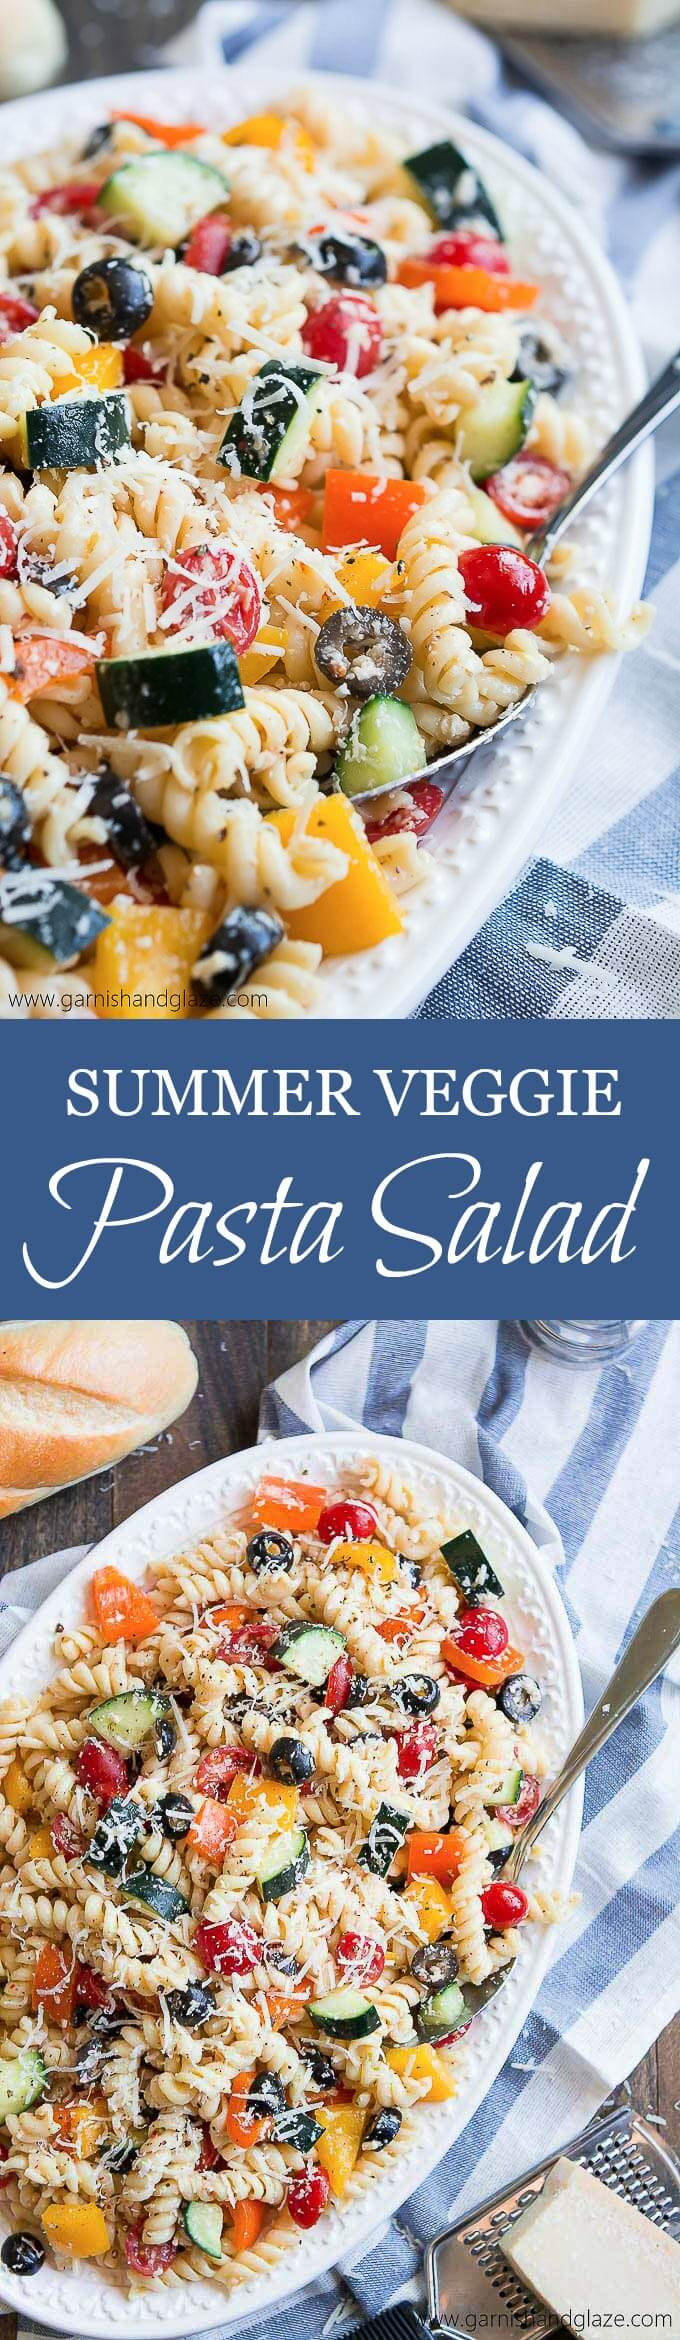 Make this Summer Veggie Pasta Salad for a quick and simple dinner or bring as a side to your next barbecue.